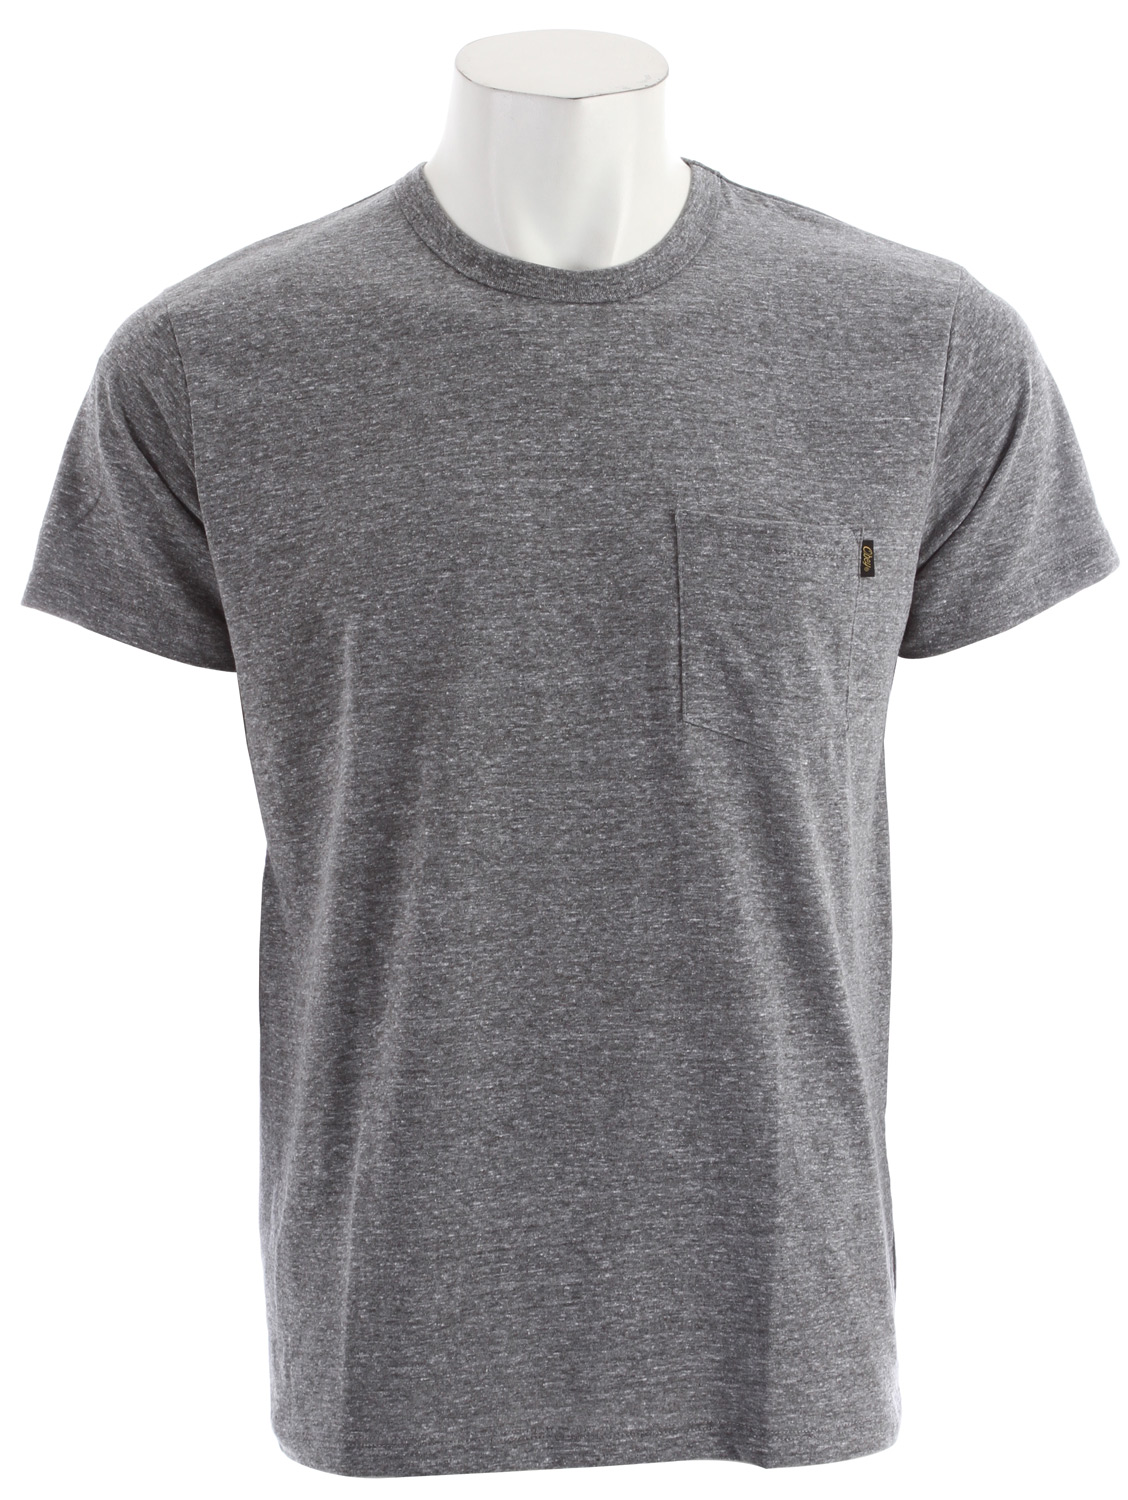 Key Features of the Obey Tri-Blend Pocket T-Shirt:  Slim fit tee with rib crew neck  Features tri blend jersey and a single chest pocket at wearer's left side  Includes OBEY specialty labels at interior neck and side of pocket  50% Polyester / 25% Cotton / 25% Rayon - $16.95